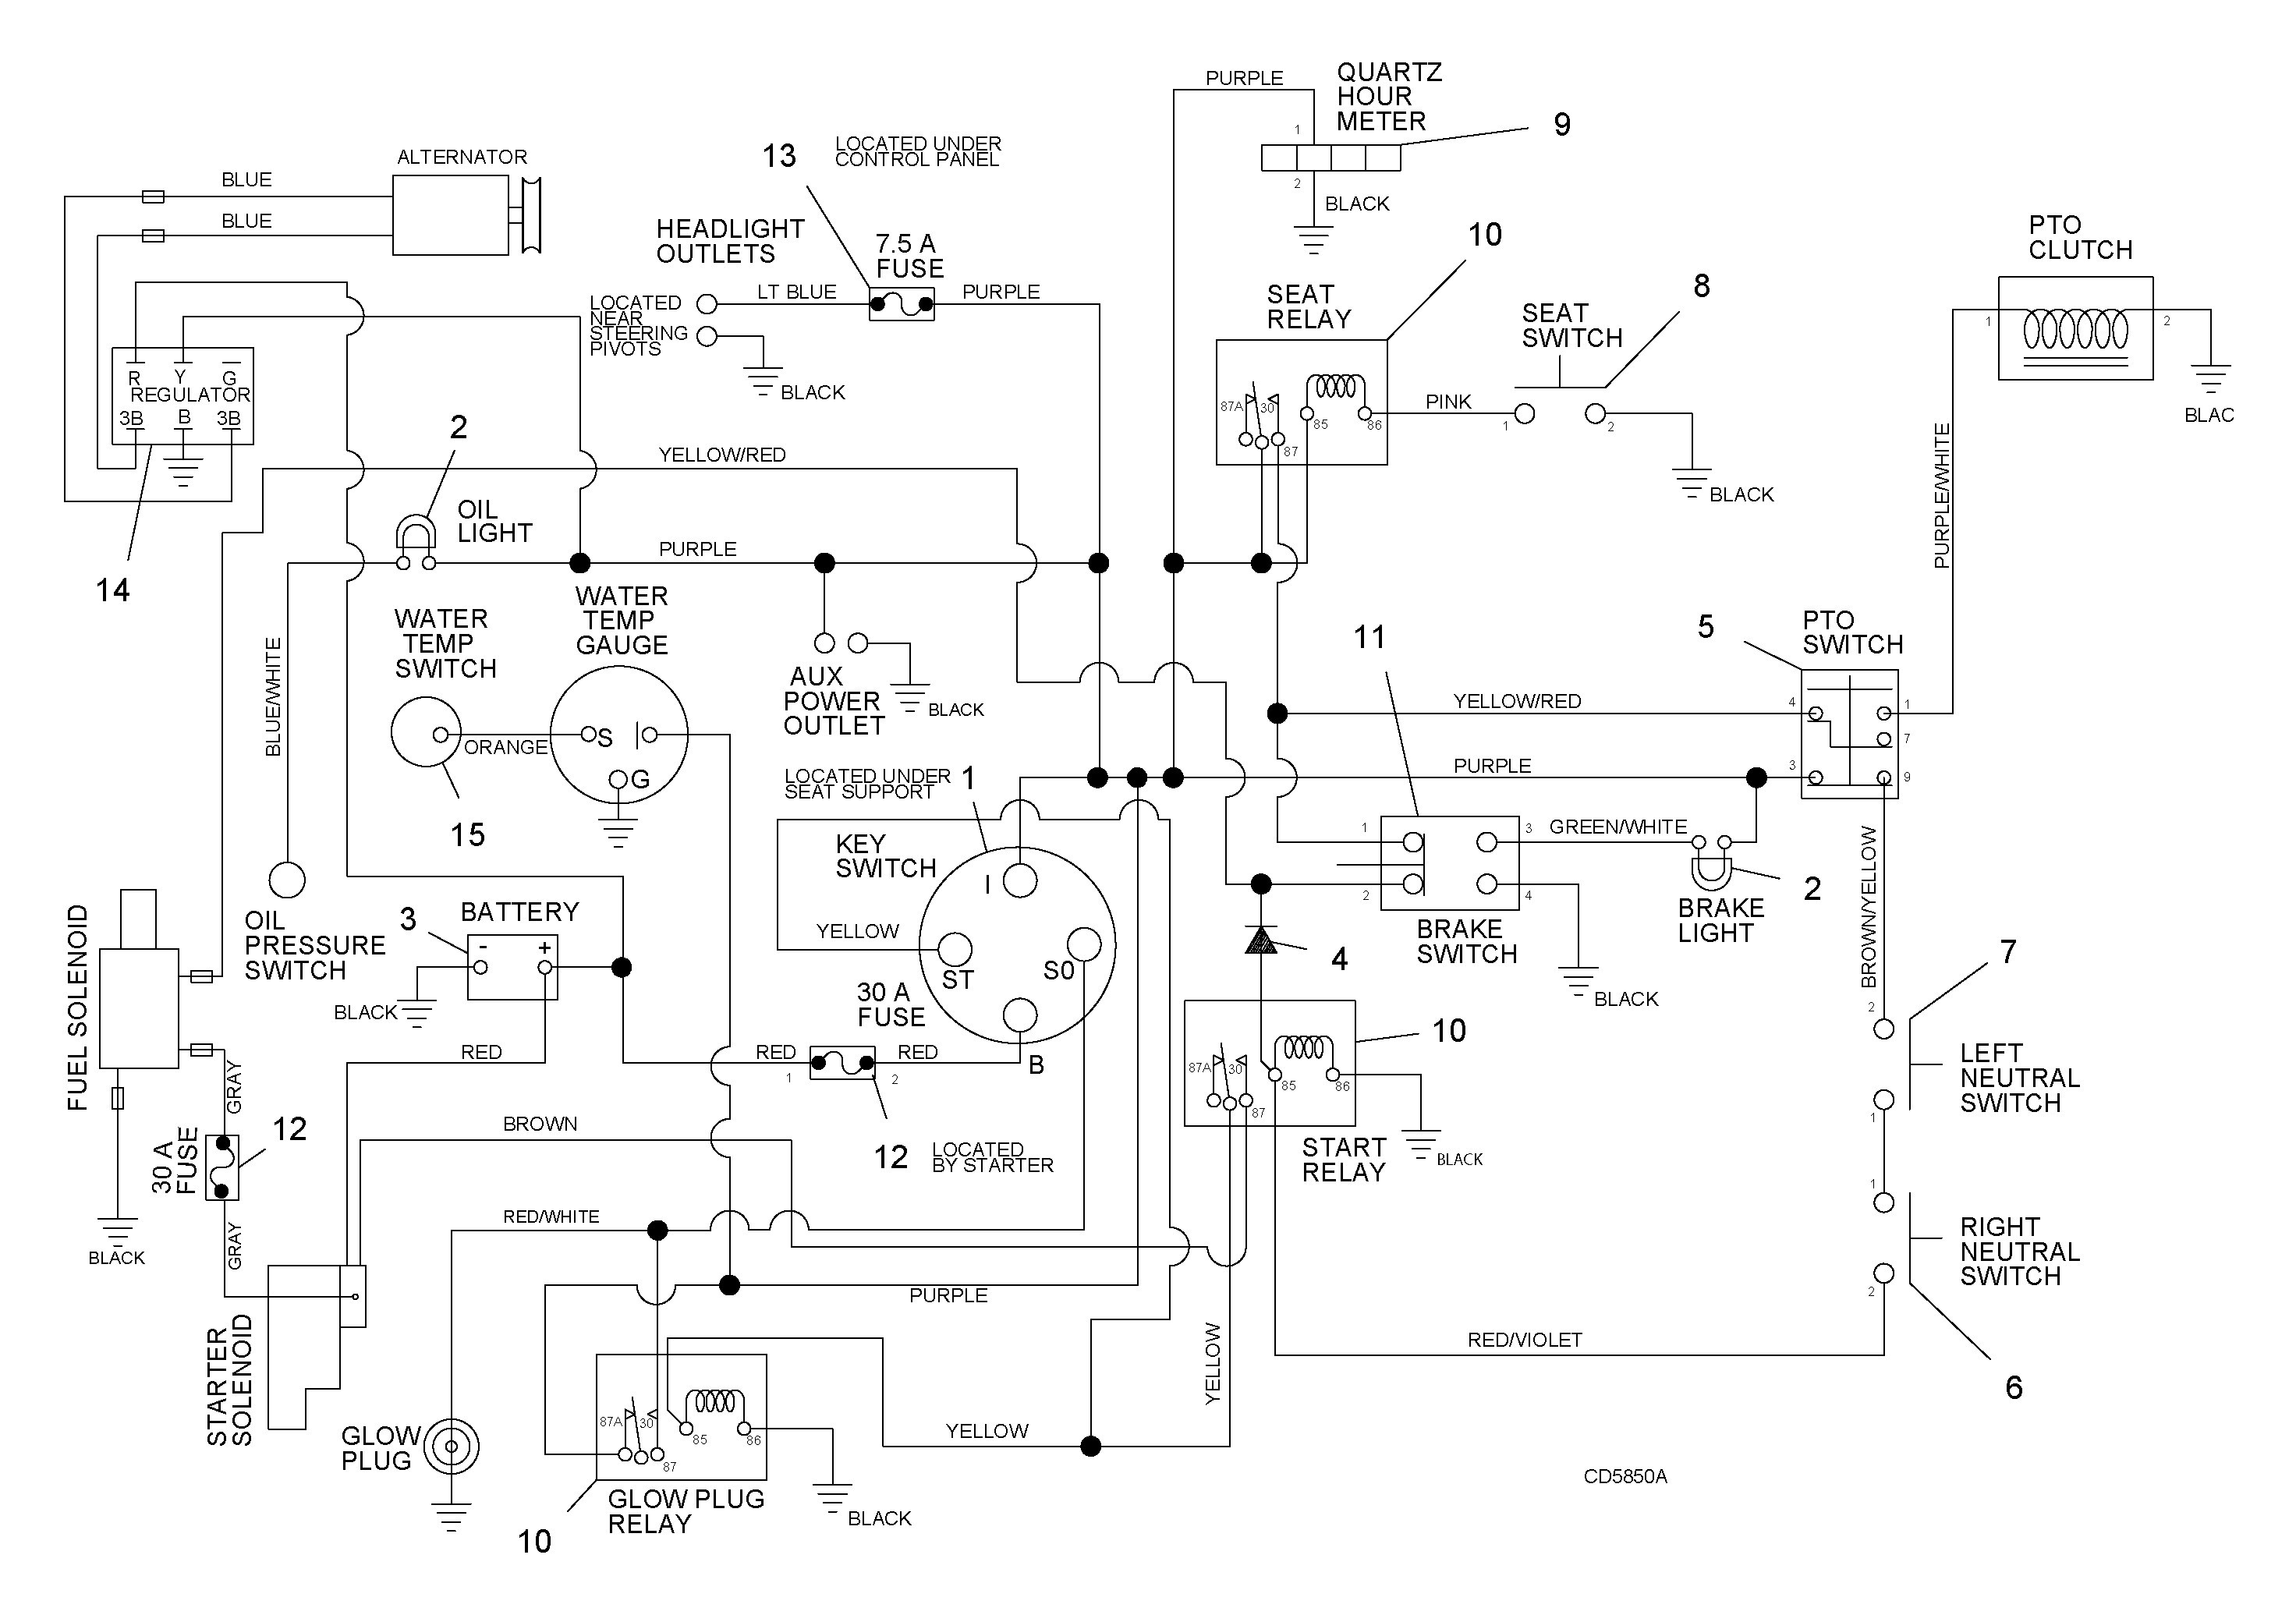 Wiring Diagram Pdf - Data Wiring Diagram Detailed - Usb Wiring Diagram Pdf